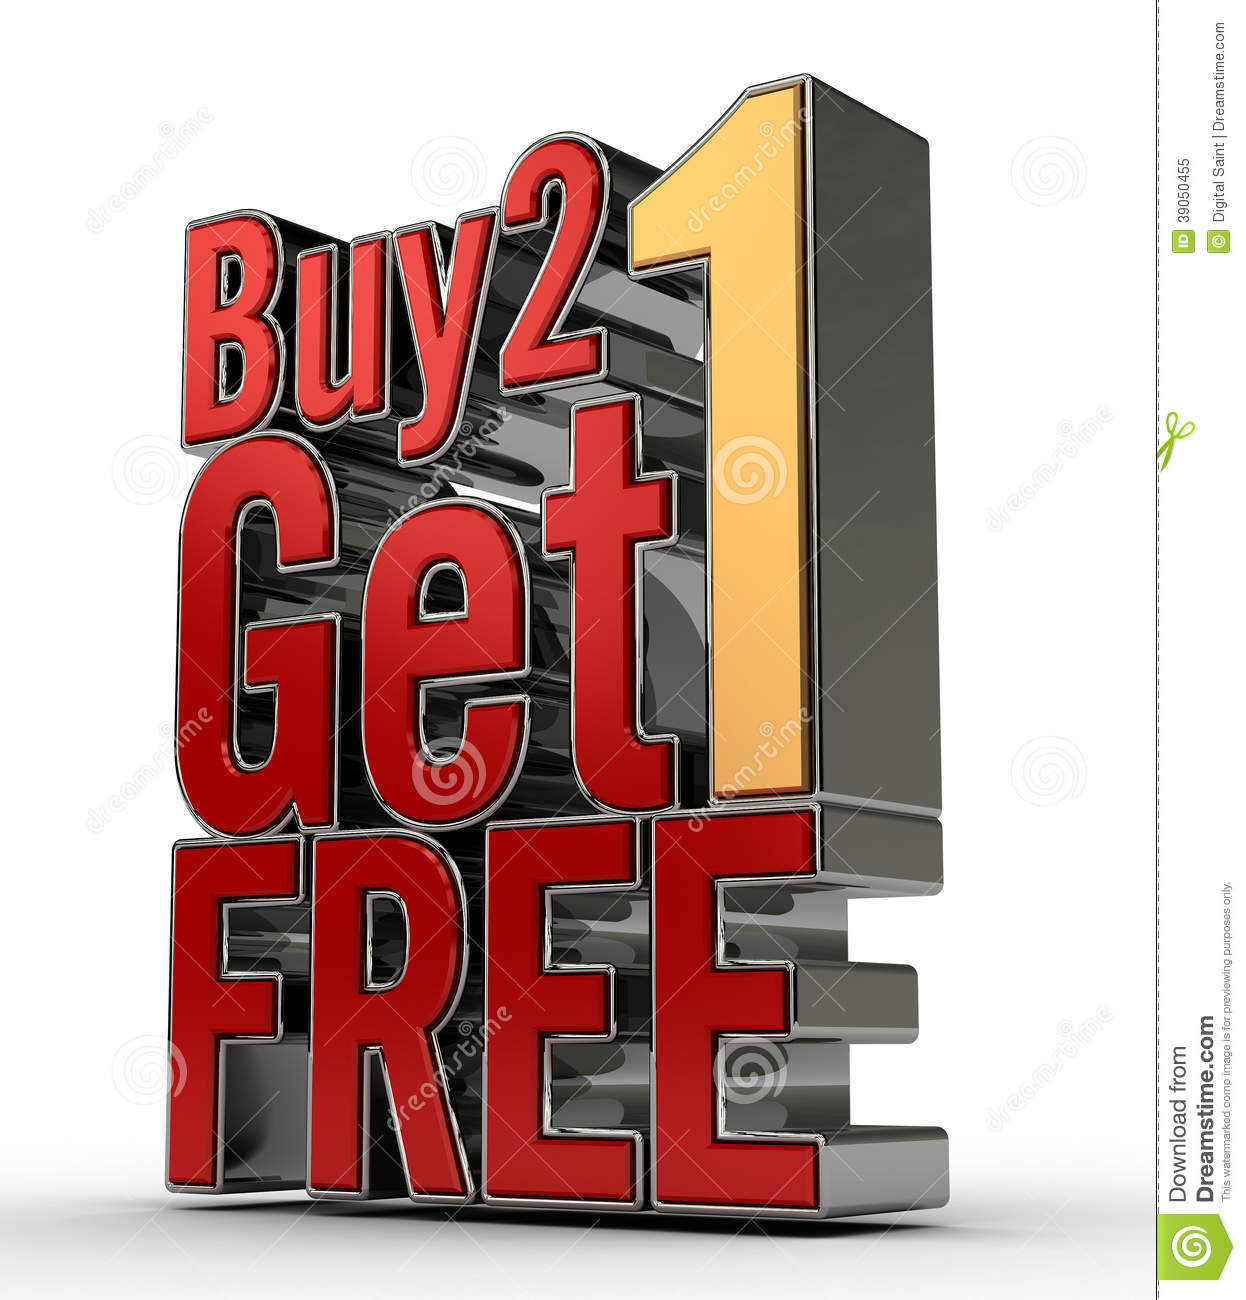 Buy: Buy 2 Get 1 FREE Stock Illustration